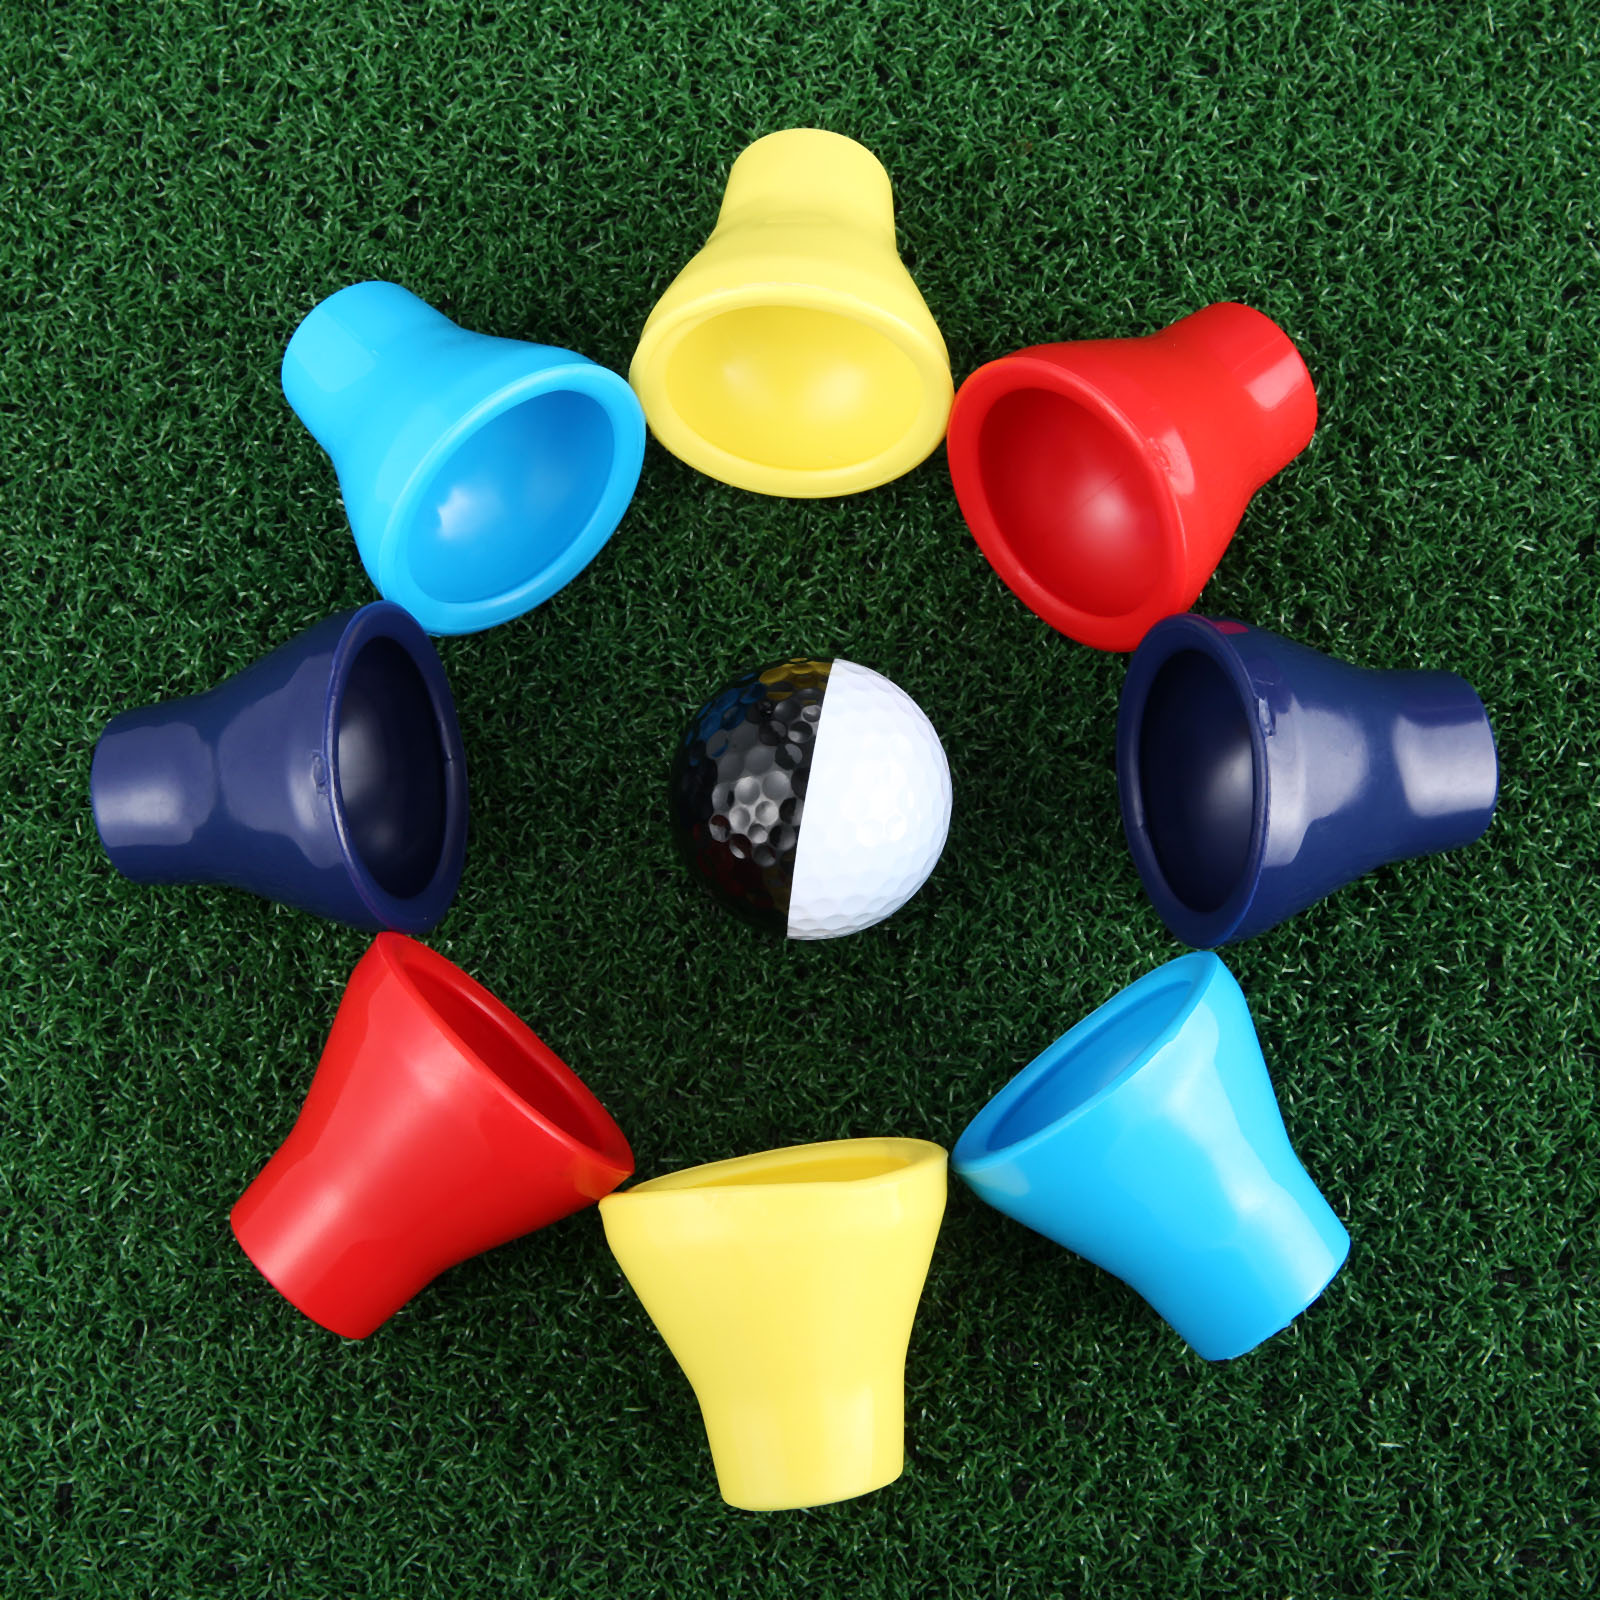 2Pcs Golf Training Aids Rubber Golf Balls Retriever Pick Up Tools Ball Putter Grip Retriever Device Pick-up Suction Cup Tools